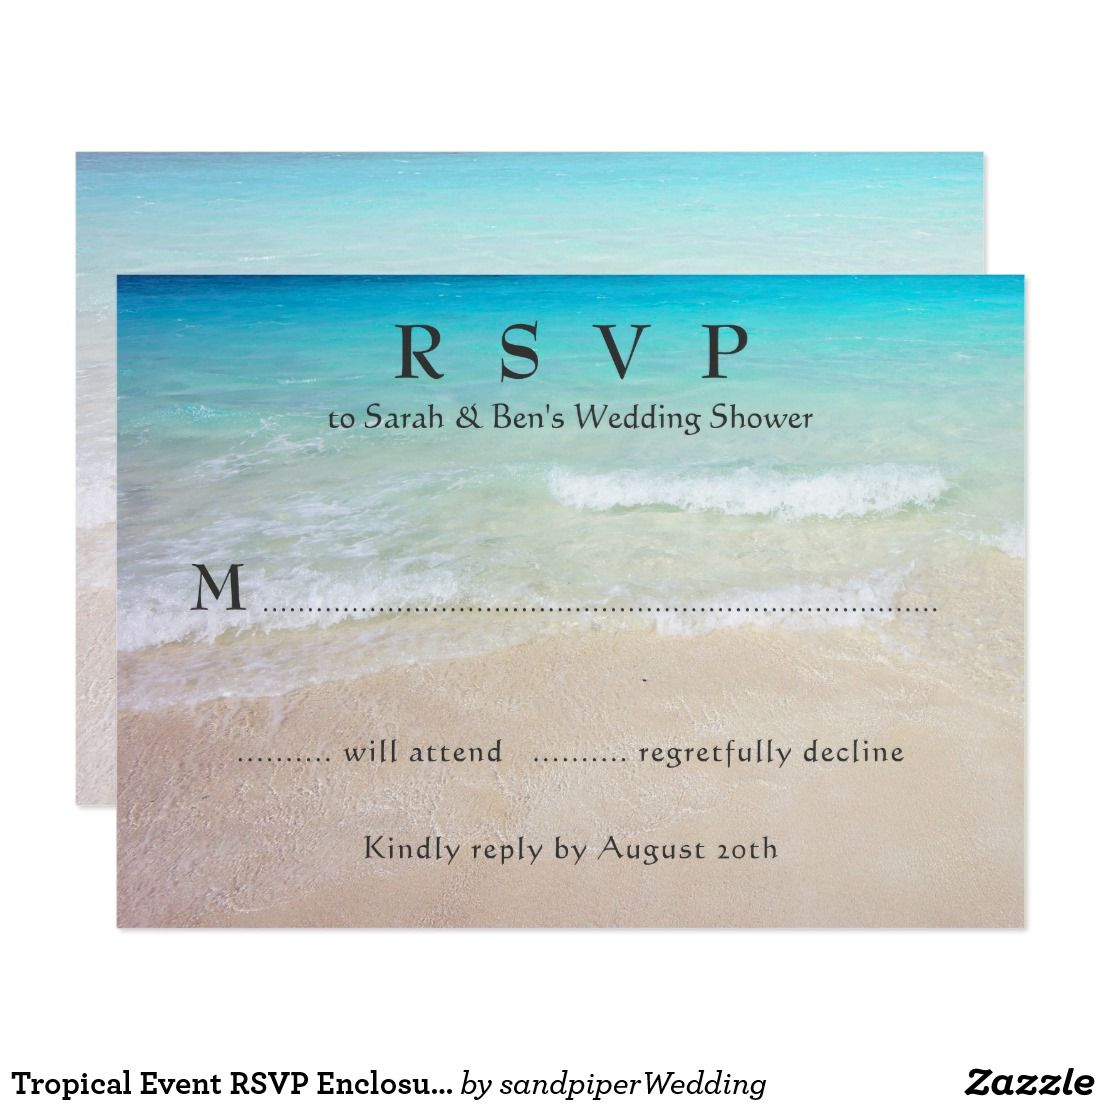 Tropical Event RSVP Enclosure Cards | Rsvp, Beach wedding ...